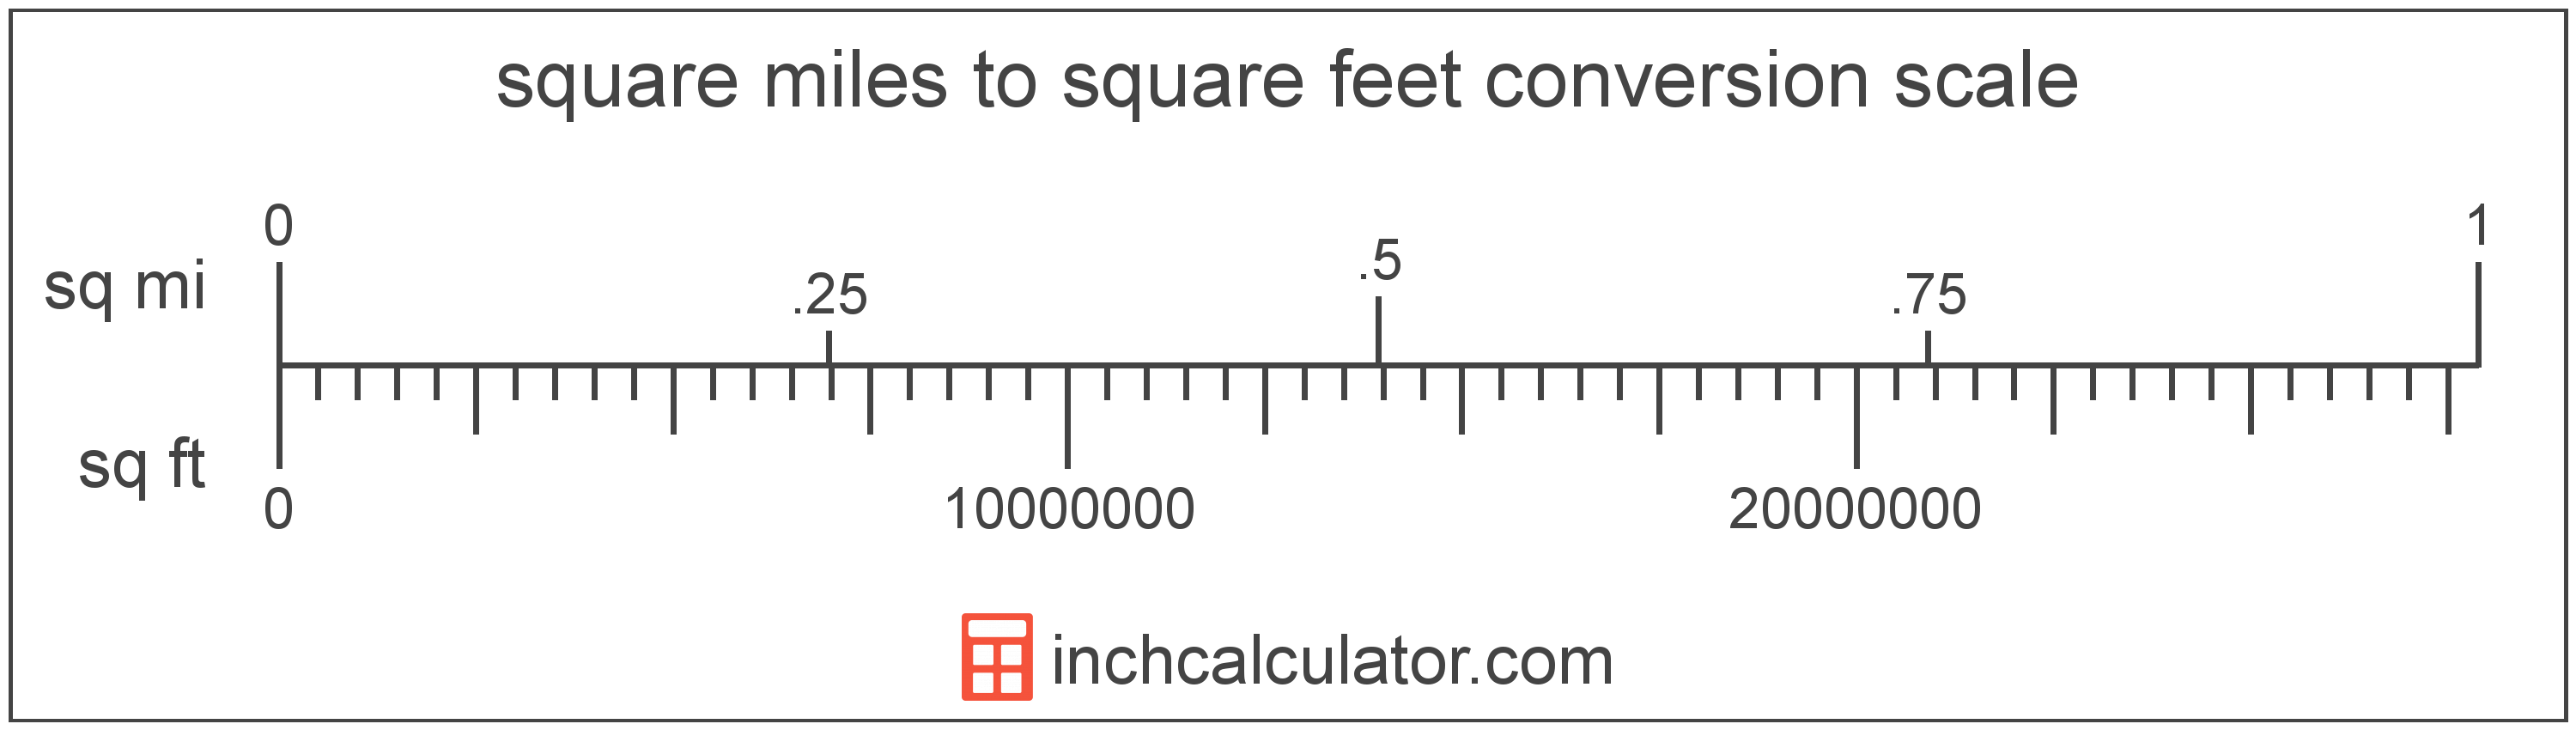 conversion scale showing square feet and equivalent square miles area values